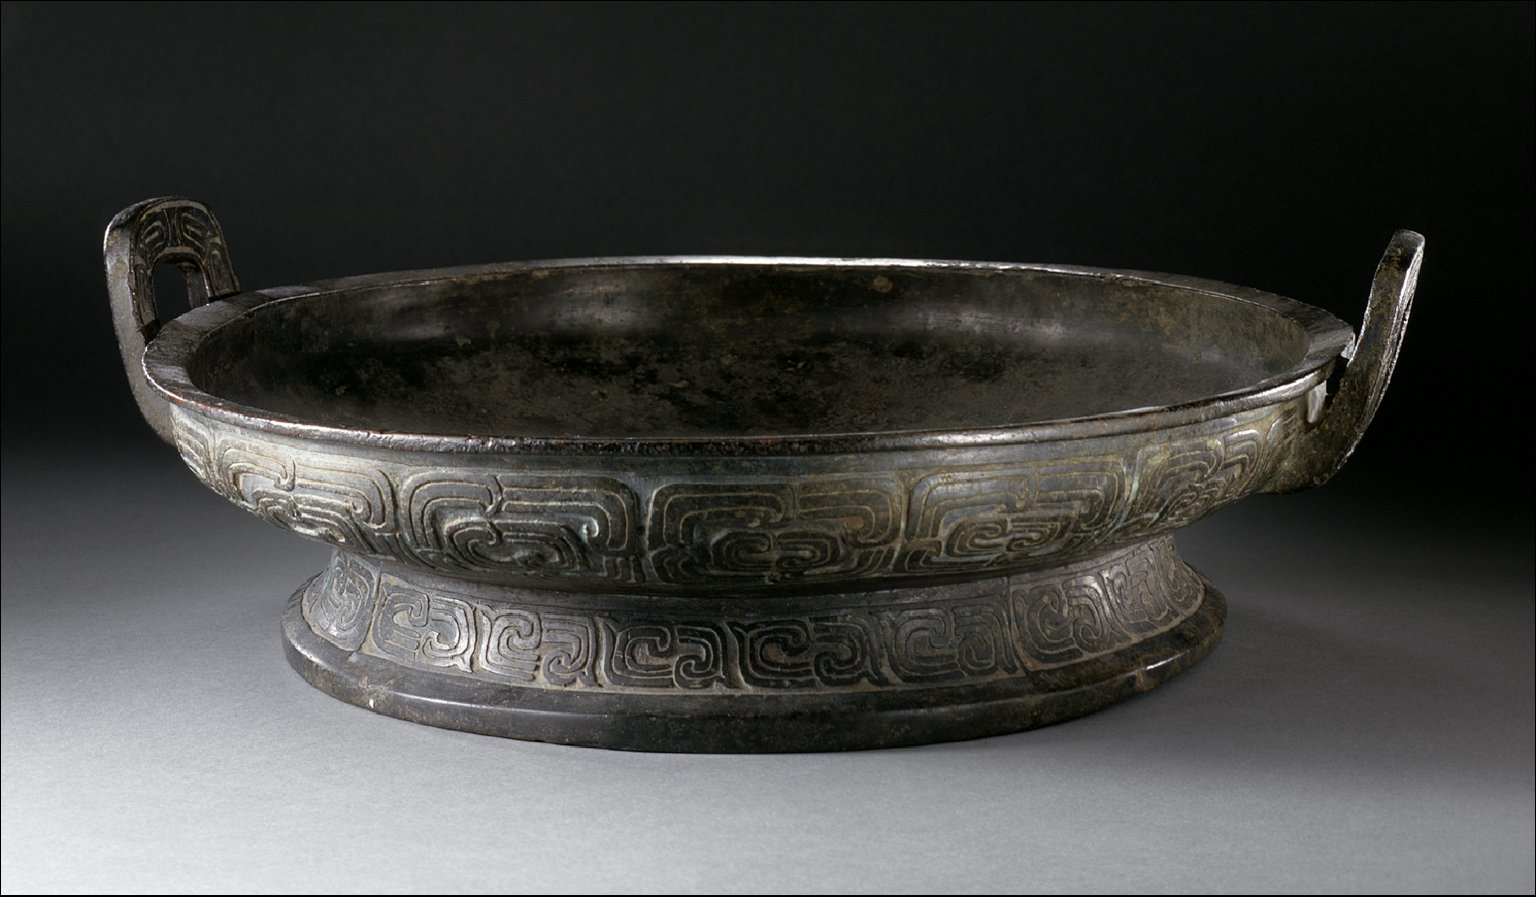 Basin (Pan) with Double Spirals